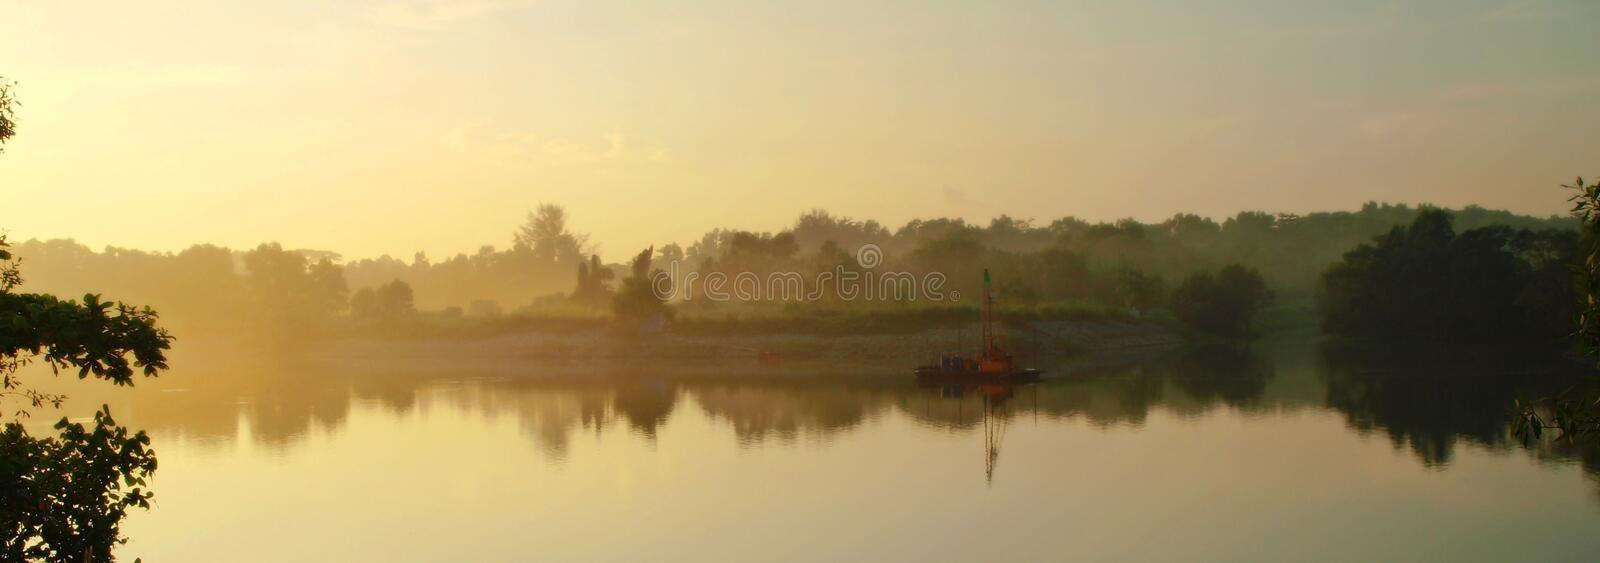 Misty River. Scenery with dredging works in progress stock image